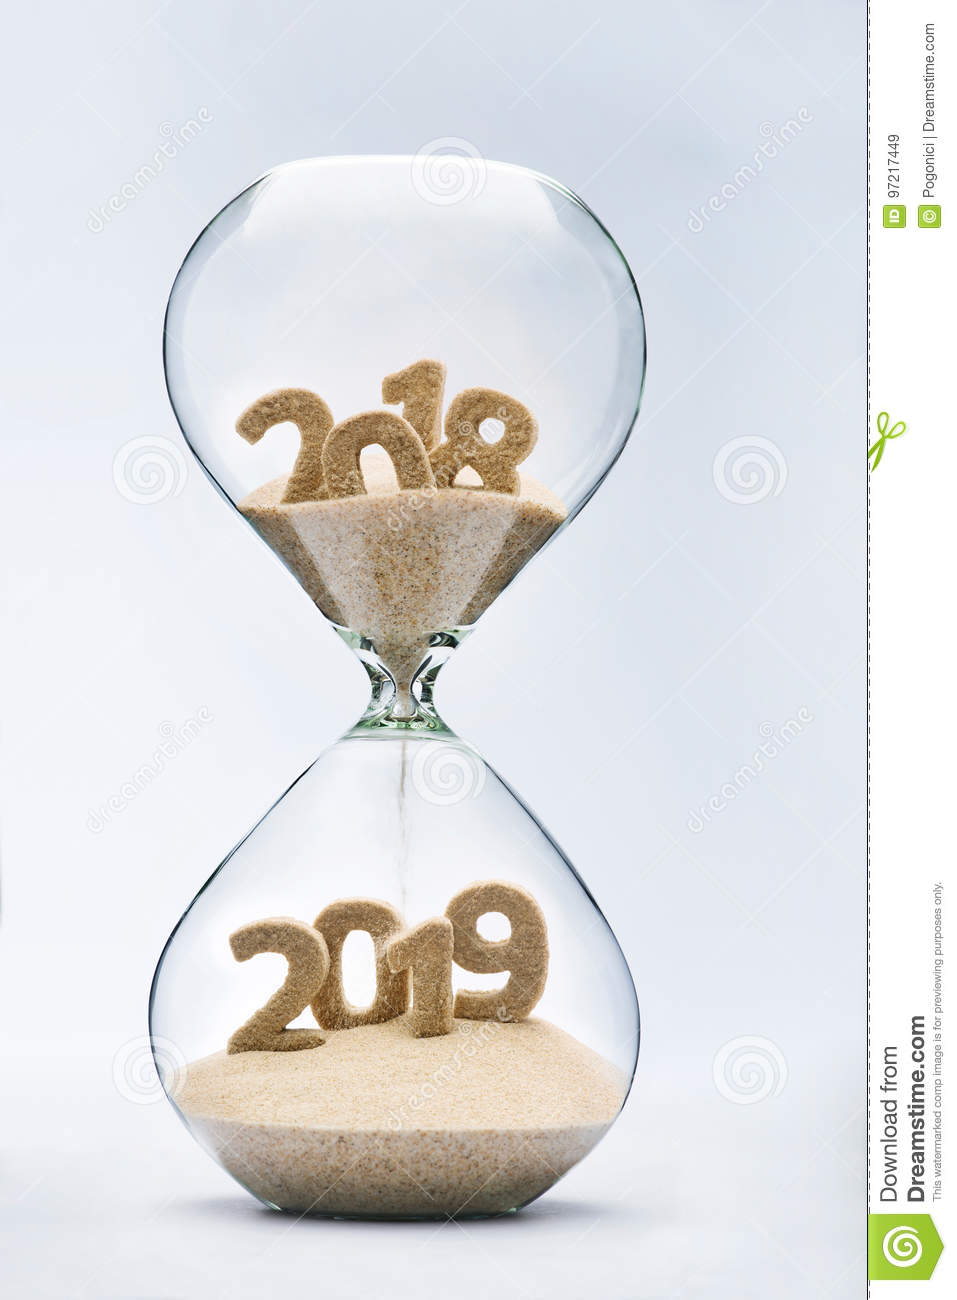 Passing into New Year 2019